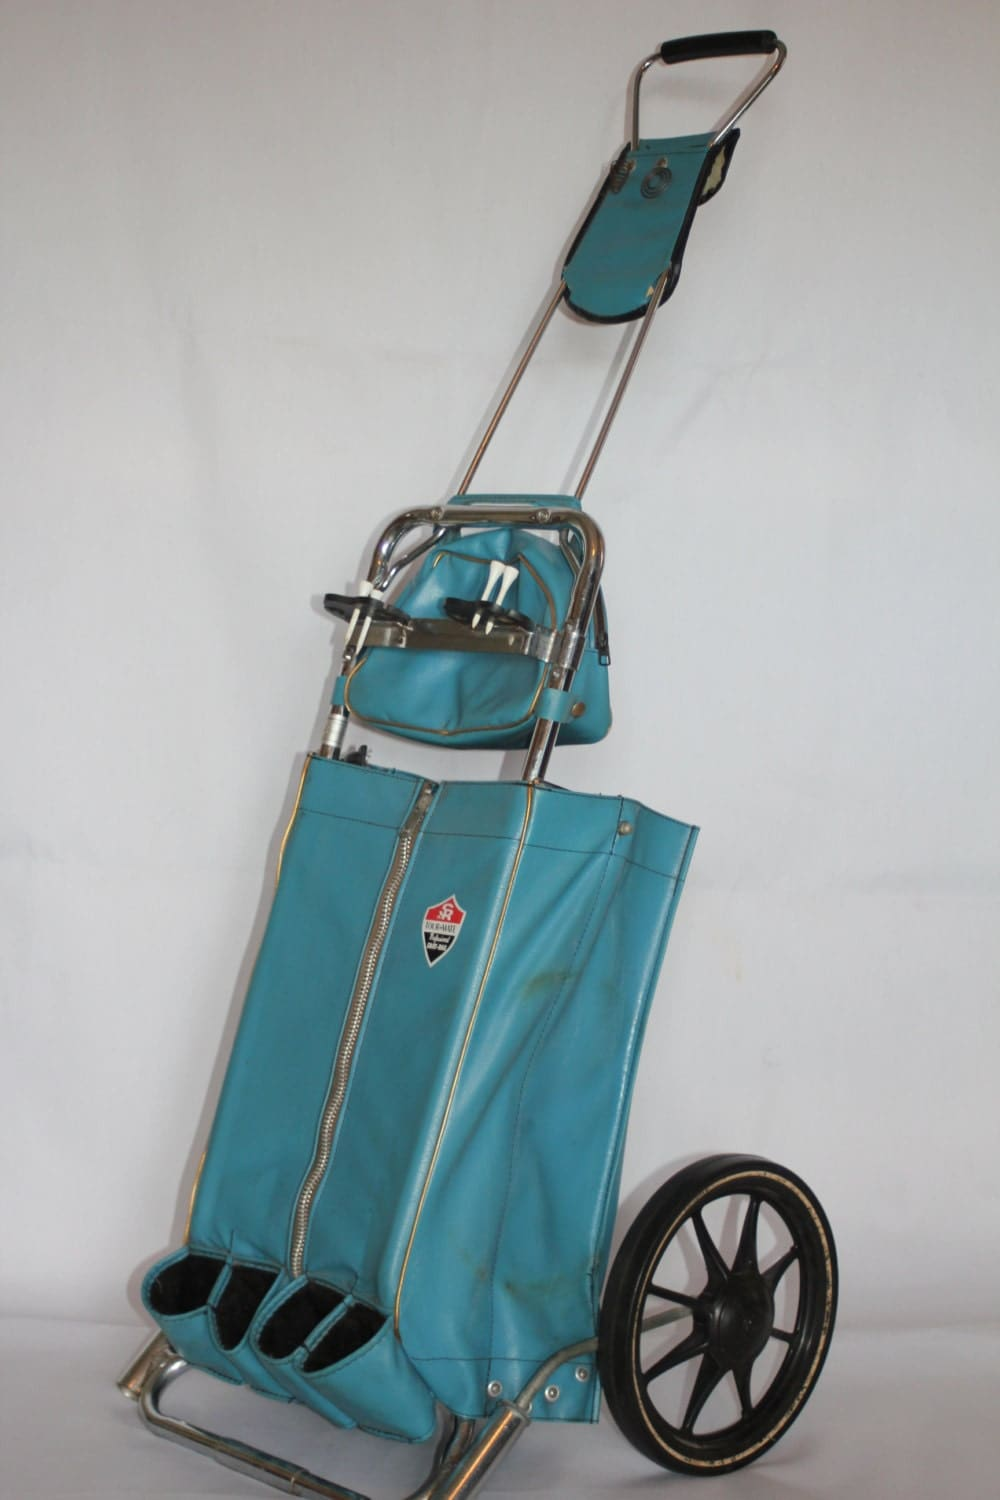 Vintage Golf Bag Pull Cart Turquoise